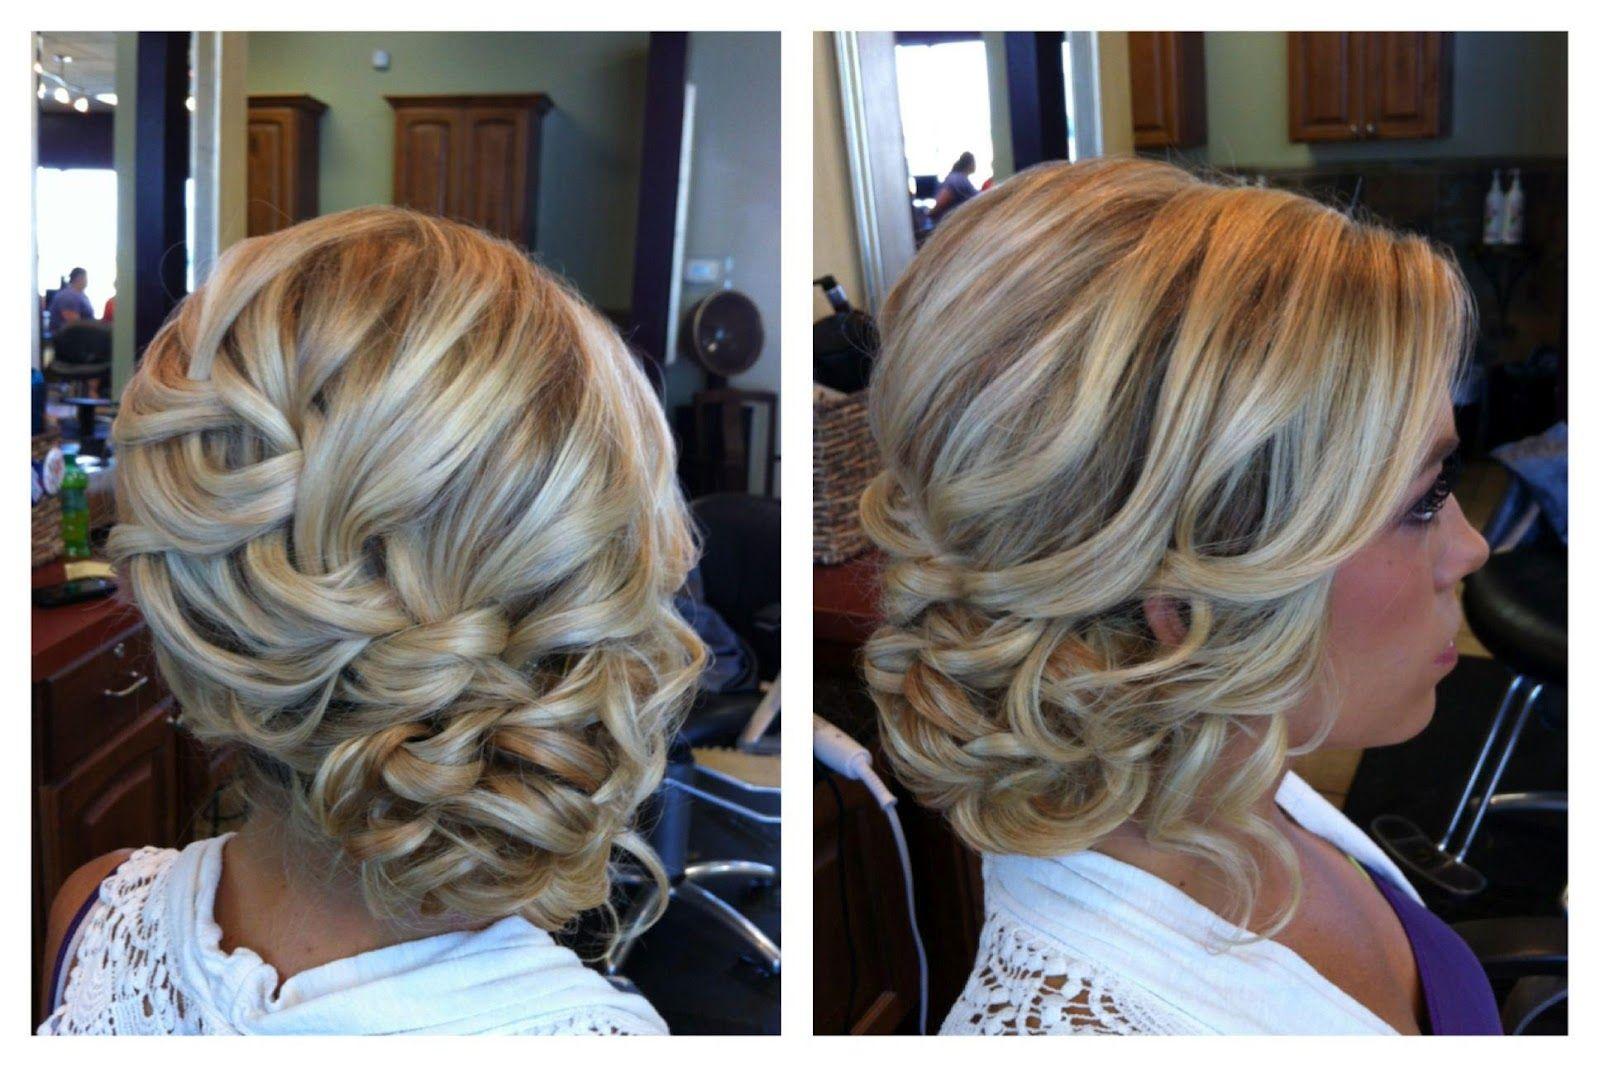 Hair and Make-up by Steph | Updo, Side braid buns and Hair style